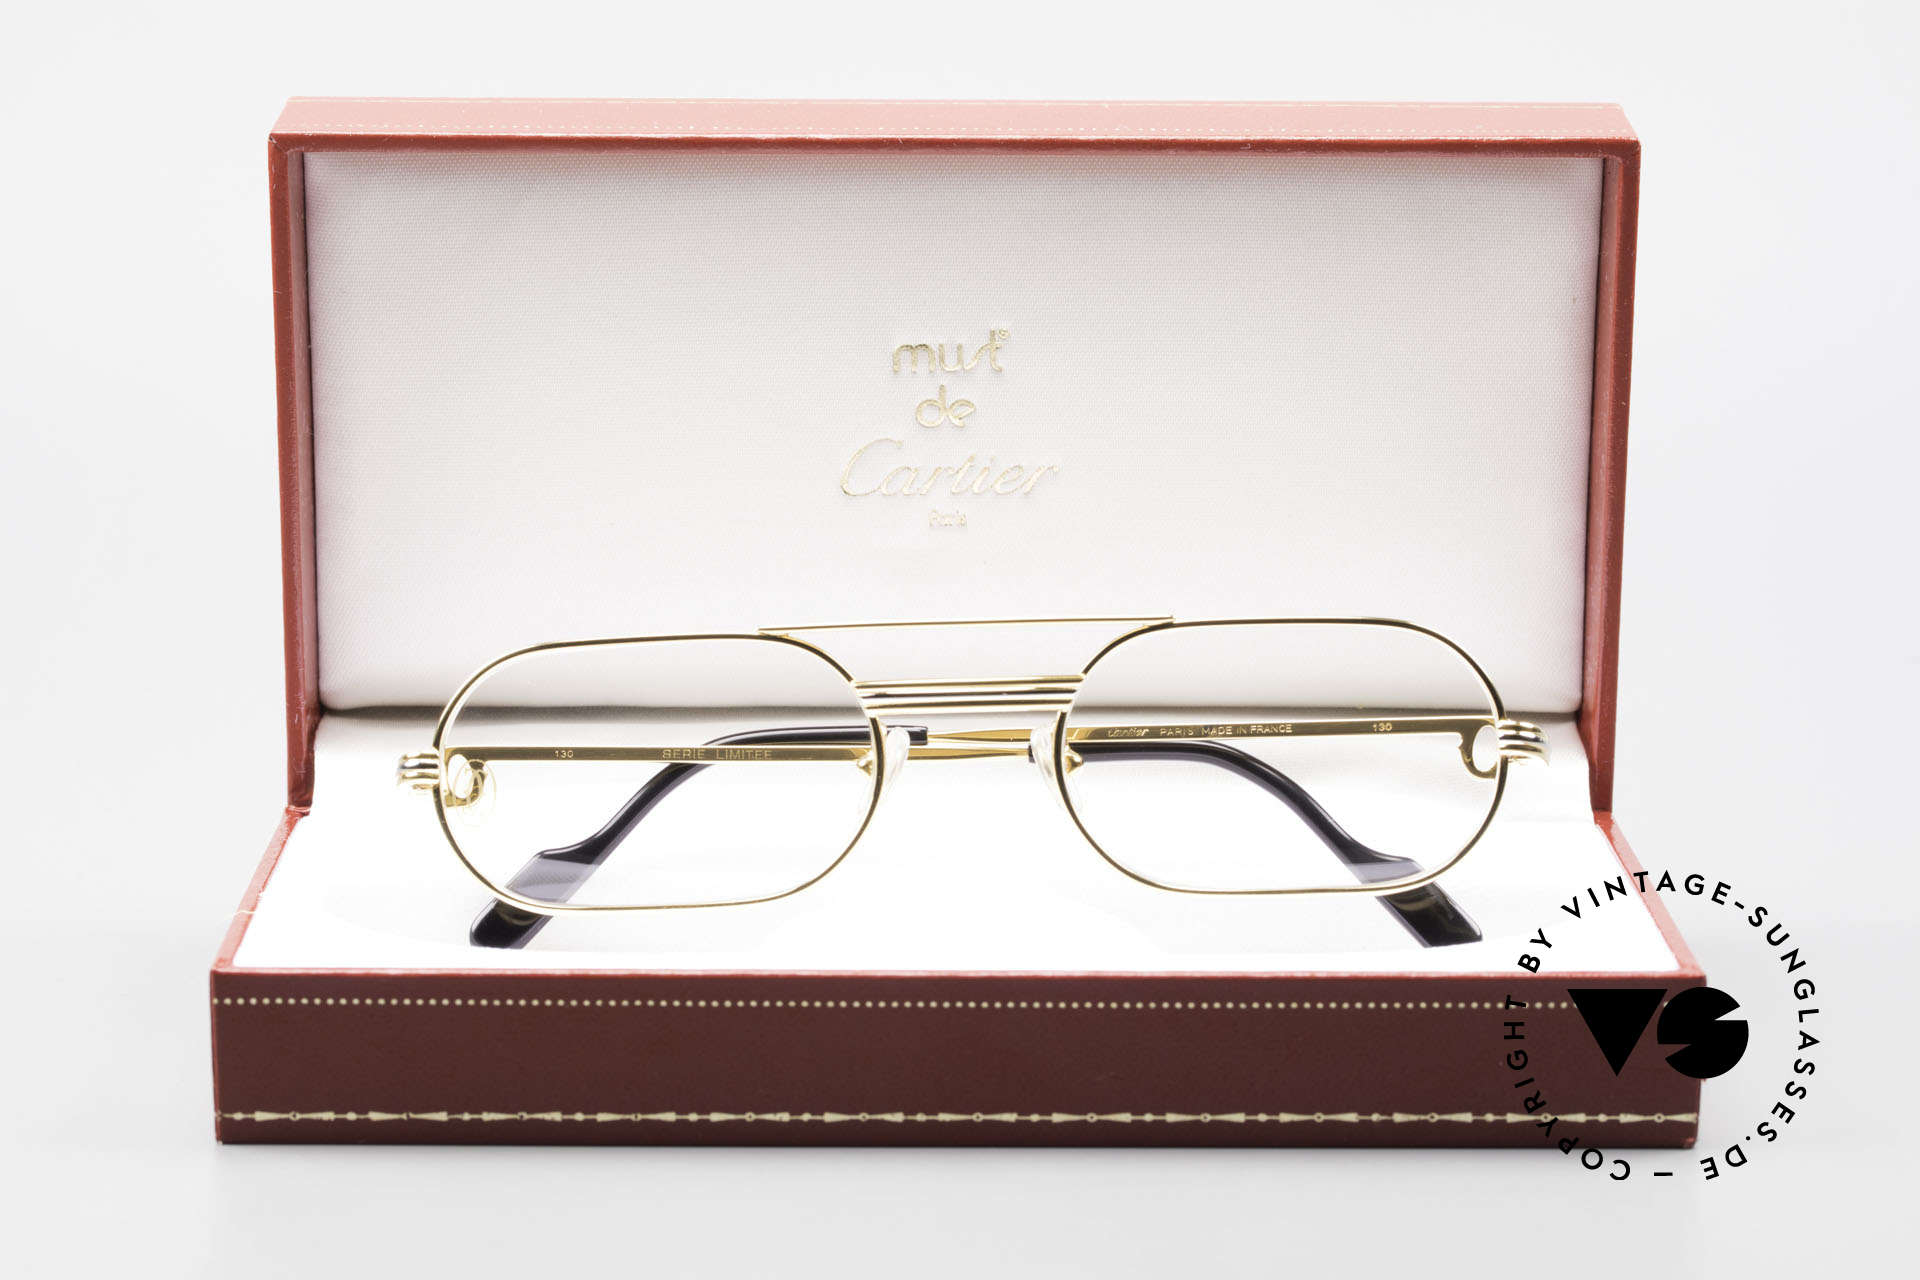 Cartier MUST LC Rose - S Limited Rosé Gold Eyeglasses, Size: medium, Made for Men and Women